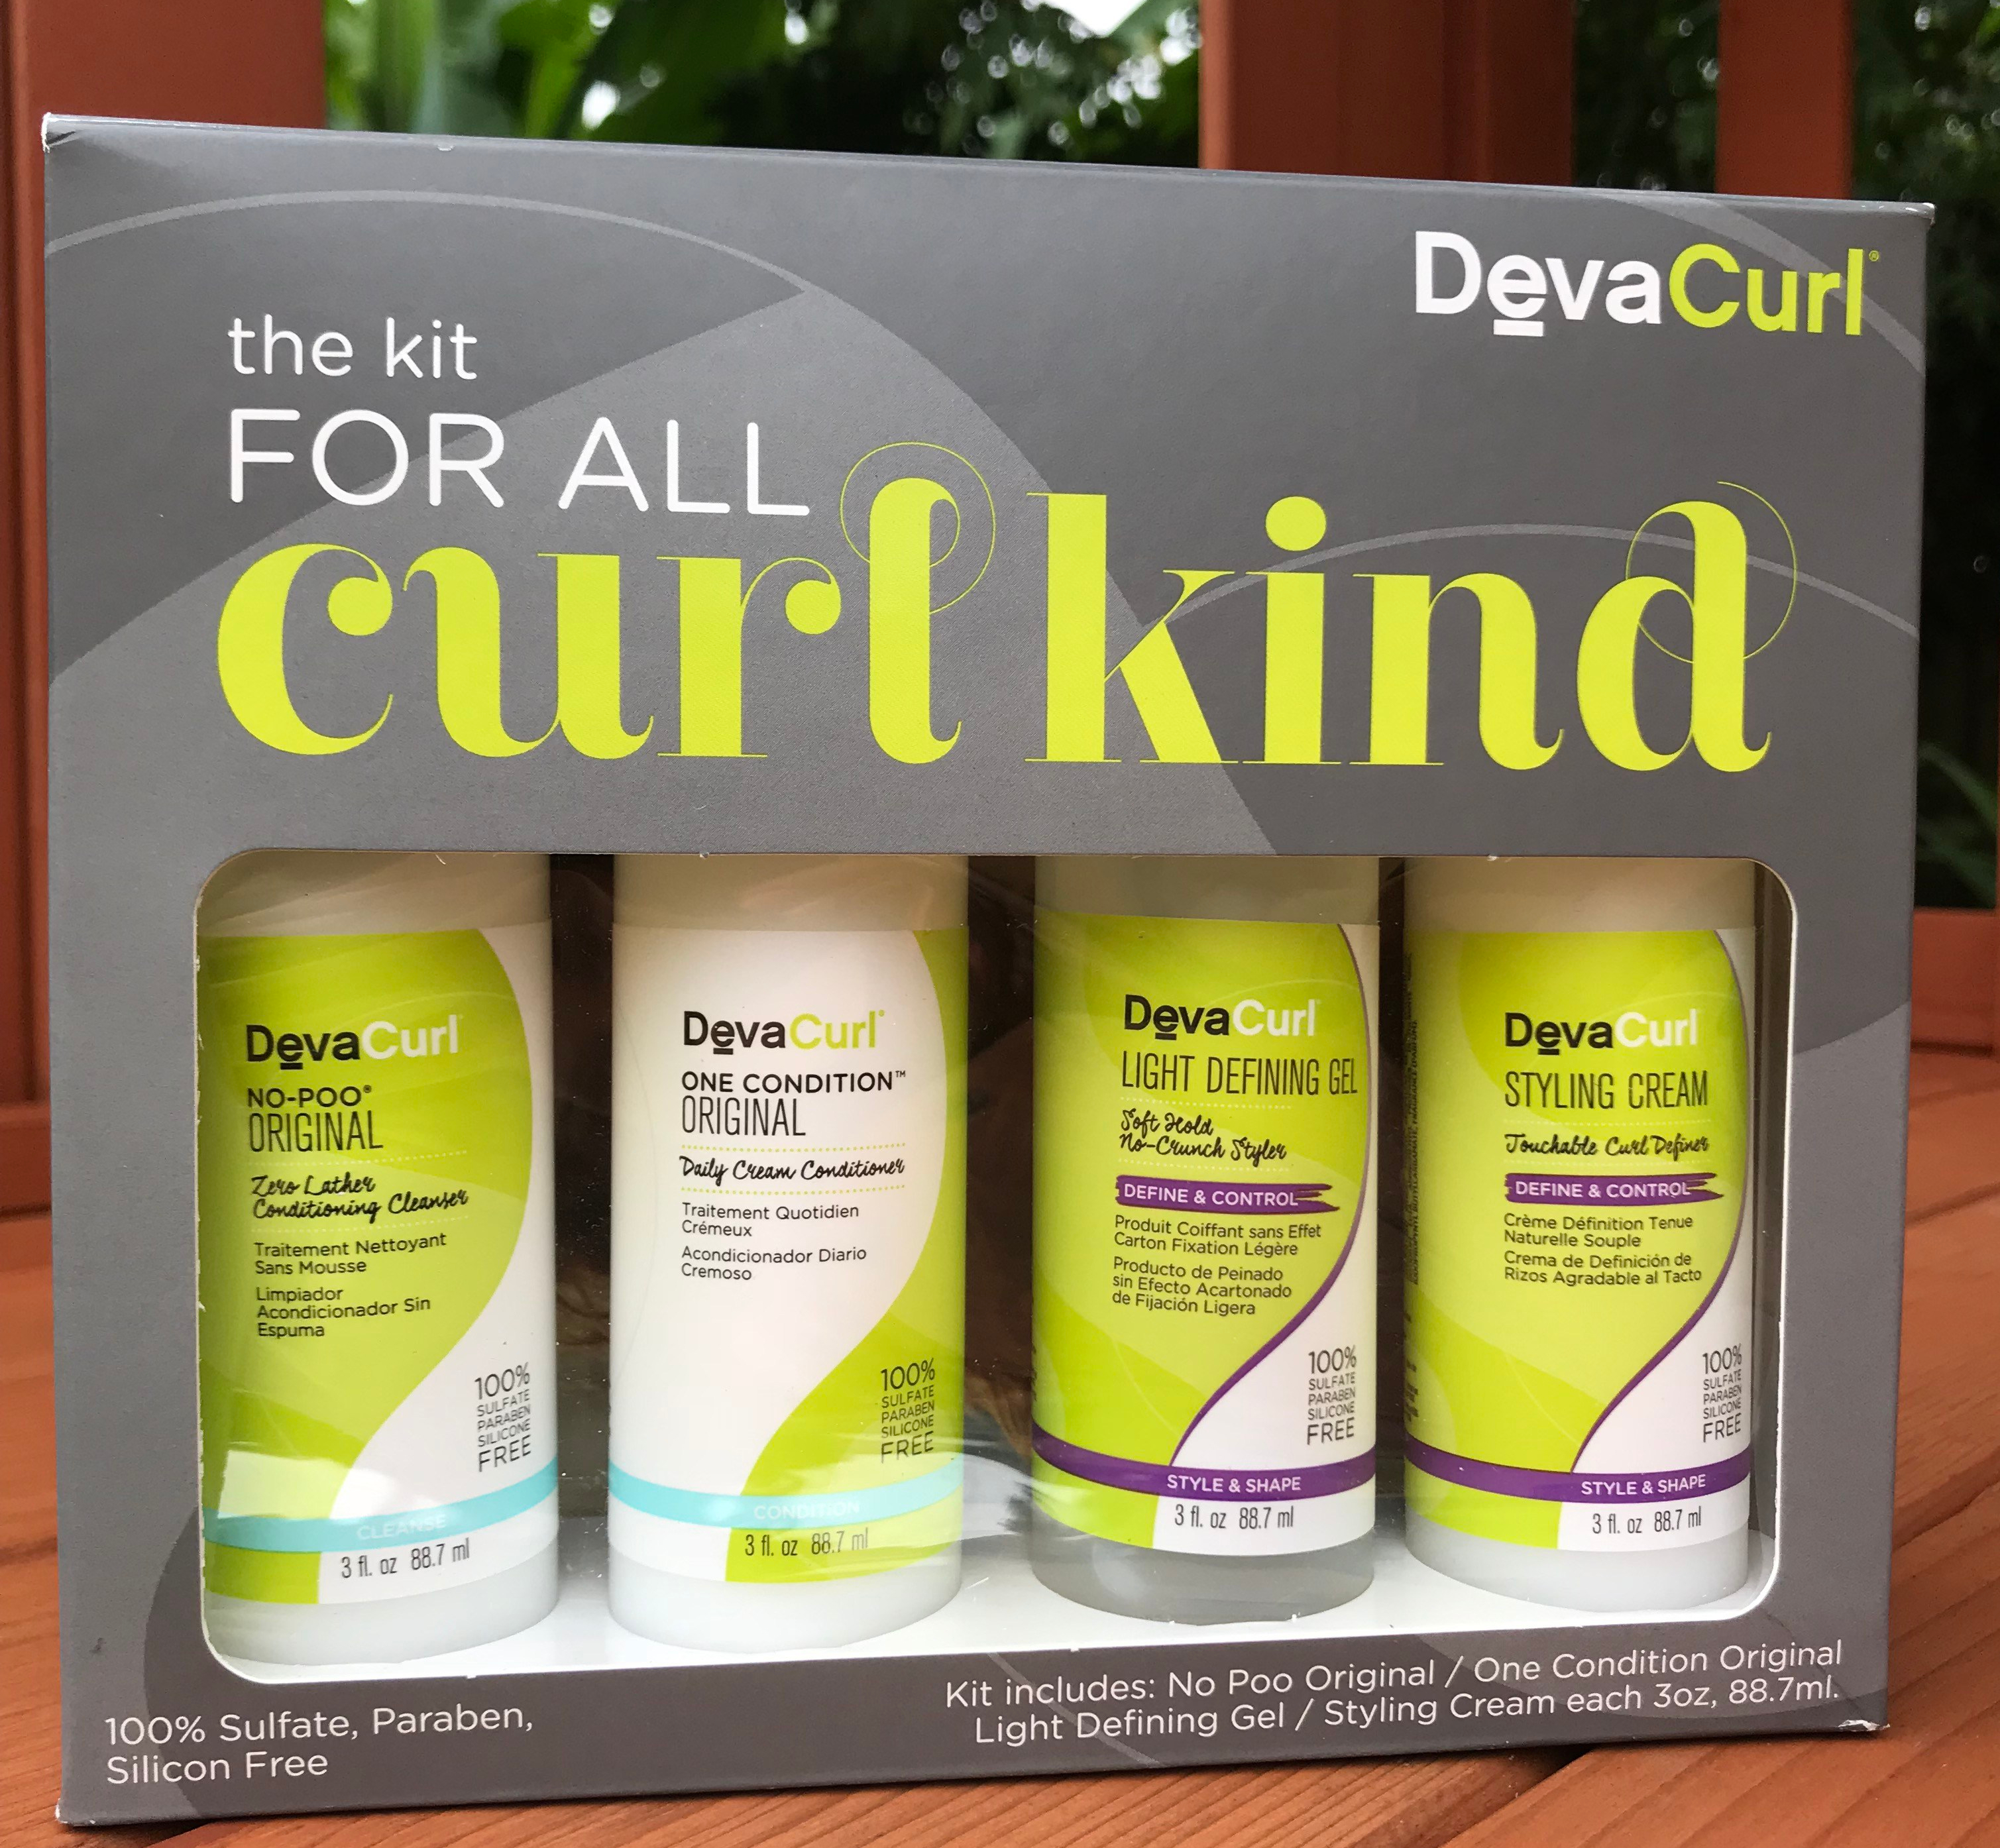 Review of DevaCurl Kit for All Curl Kind